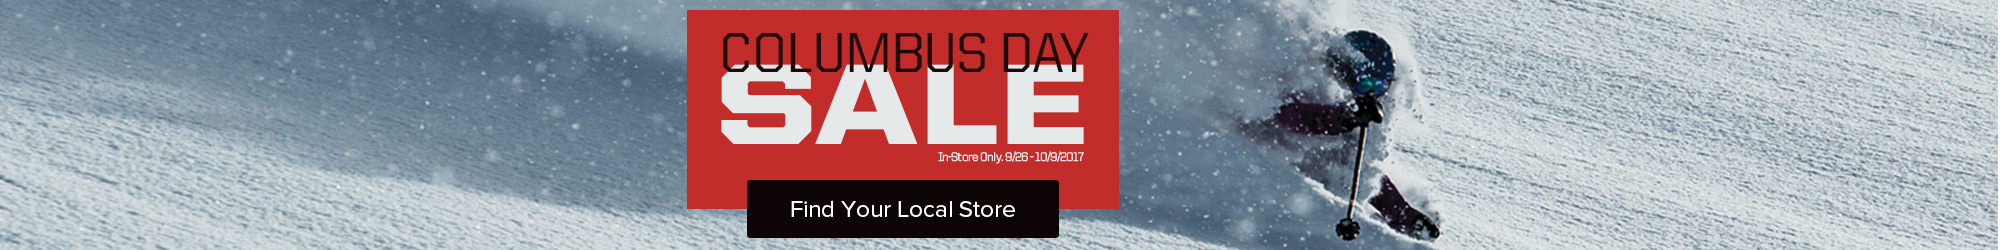 Columbus Day Sale - Lowest Prices of the season now through 10/9/2017. In-store only.